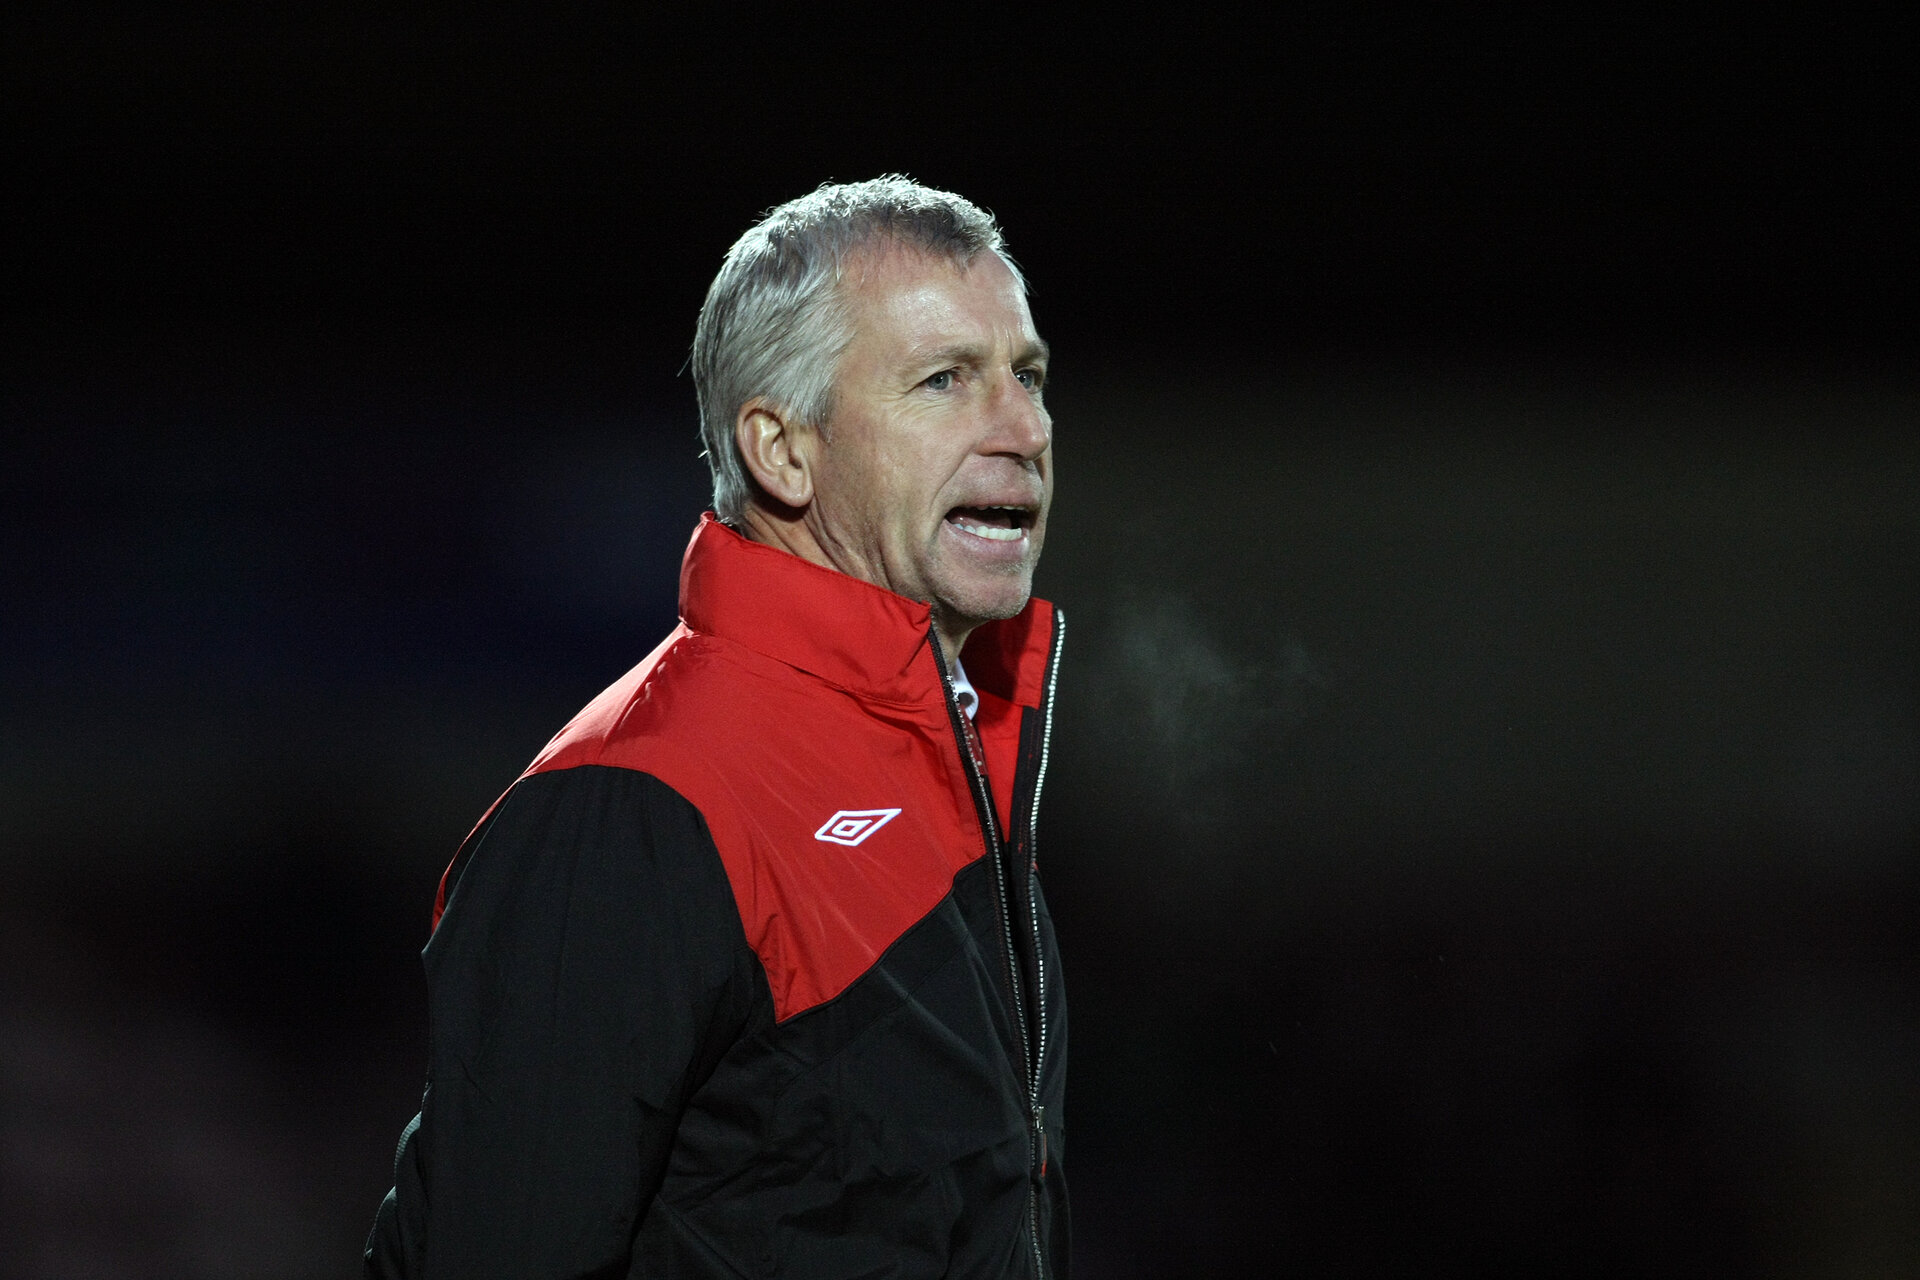 NORTHAMPTON, ENGLAND - NOVEMBER 28:  Southampton manager Alan Pardew looks on during the FA Cup sponsored by e.on Second Round Match between Northampton Town and Southampton at Sixfields Stadium on November 28, 2009 in Northampton, England. (Photo by Pete Norton/Getty Images)